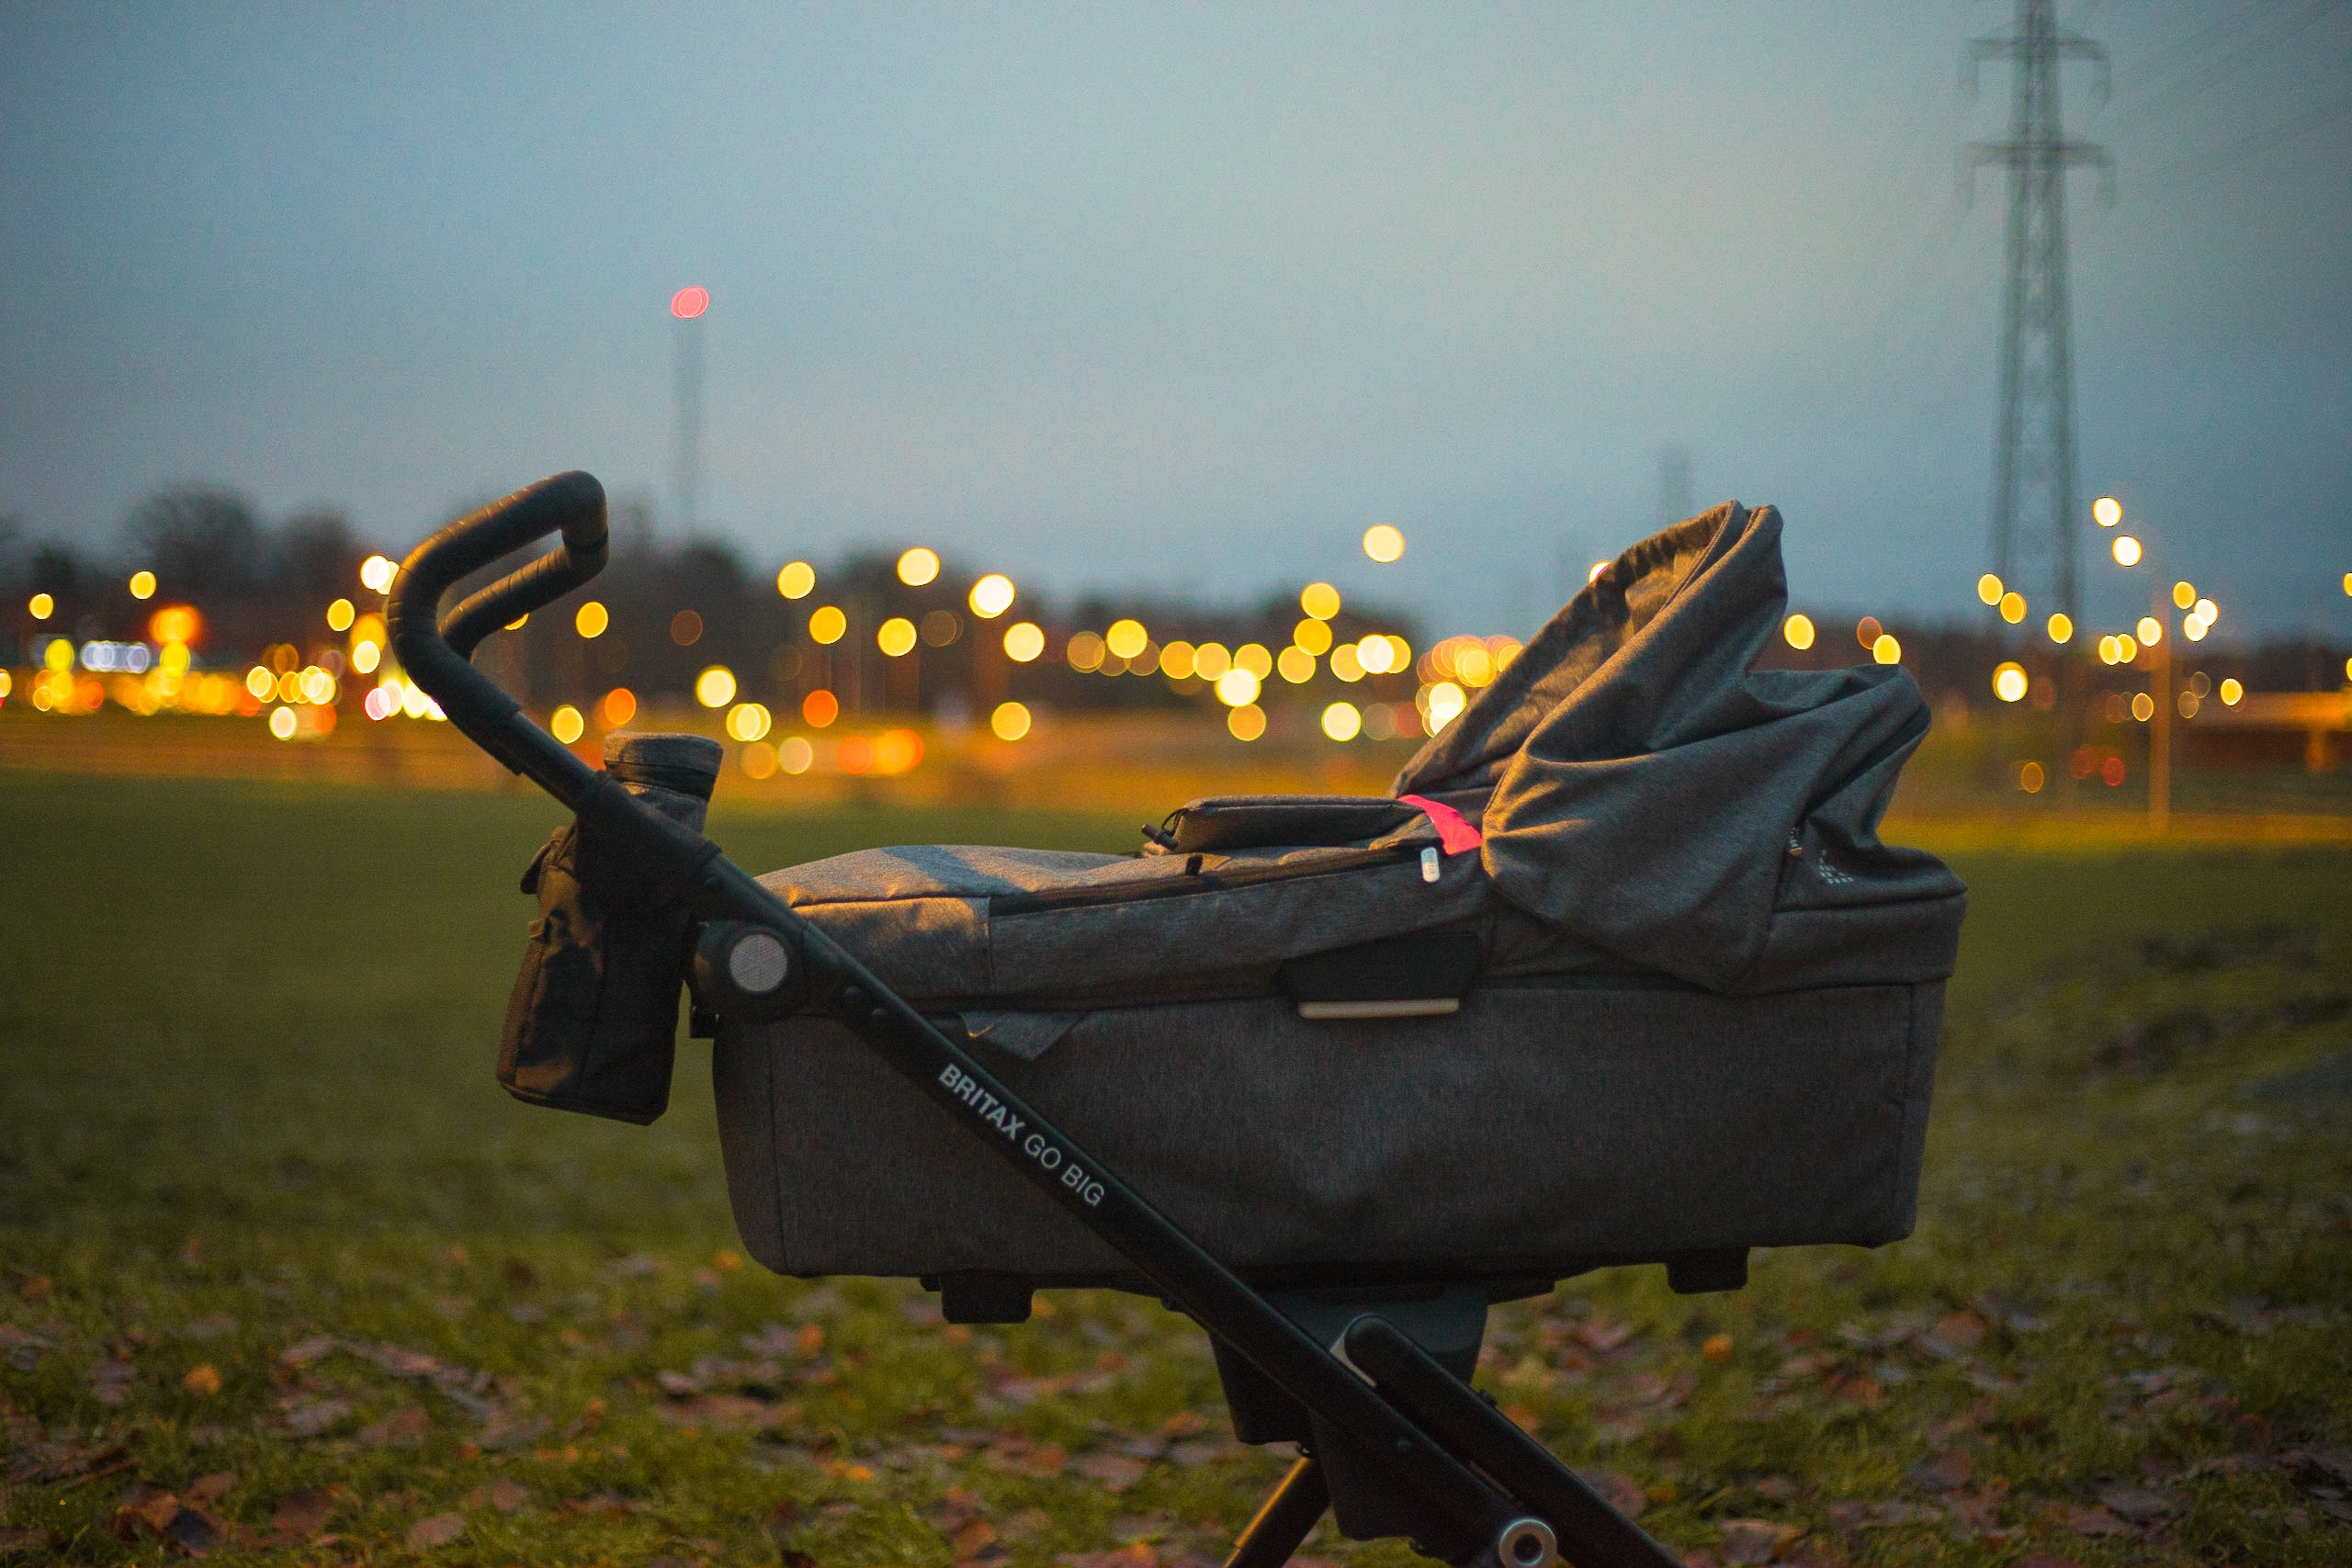 Picture of a stroller